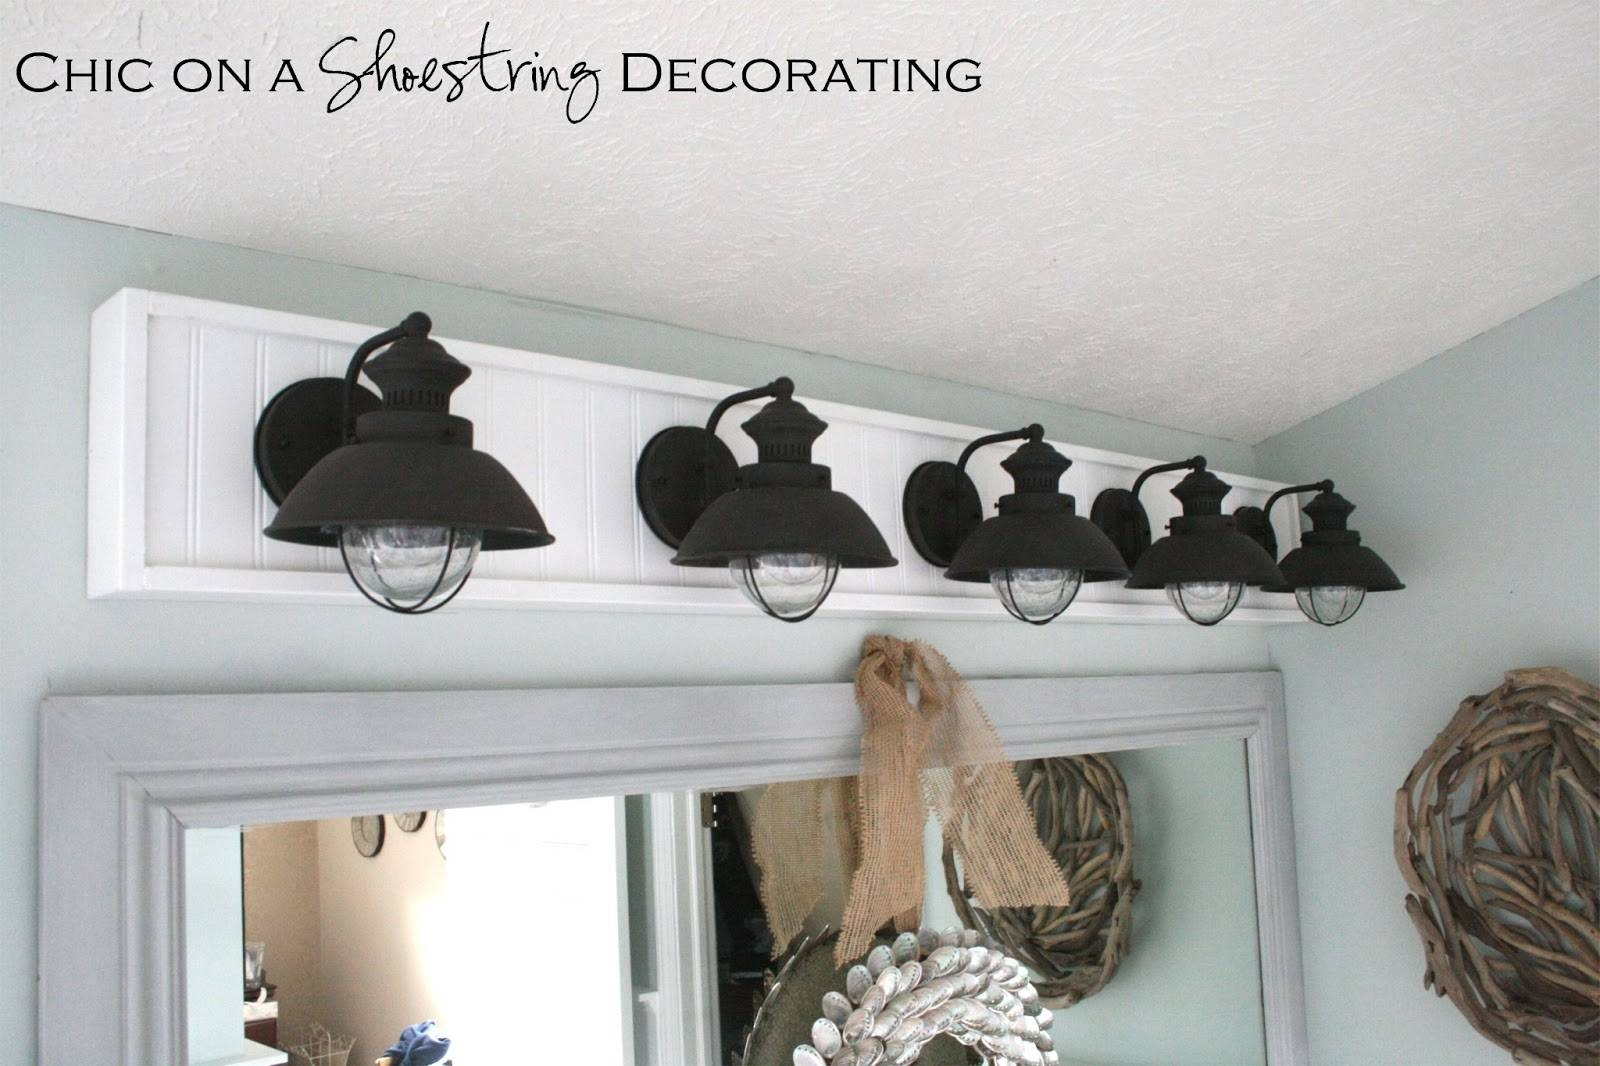 Chic On A Shoestring Decorating: How To Build A Bathroom Light Fixture with regard to Beachy Lighting (Image 9 of 15)